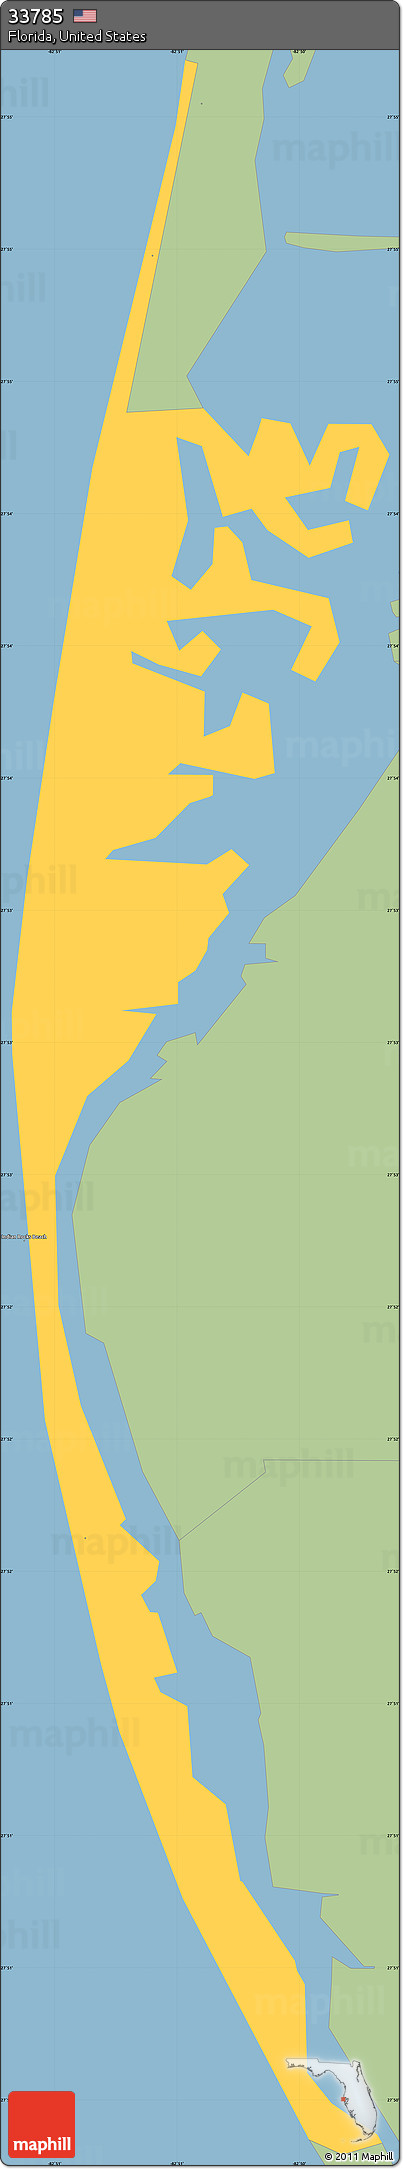 Free Savanna Style Simple Map Of ZIP Code - Free map of united states zip codes